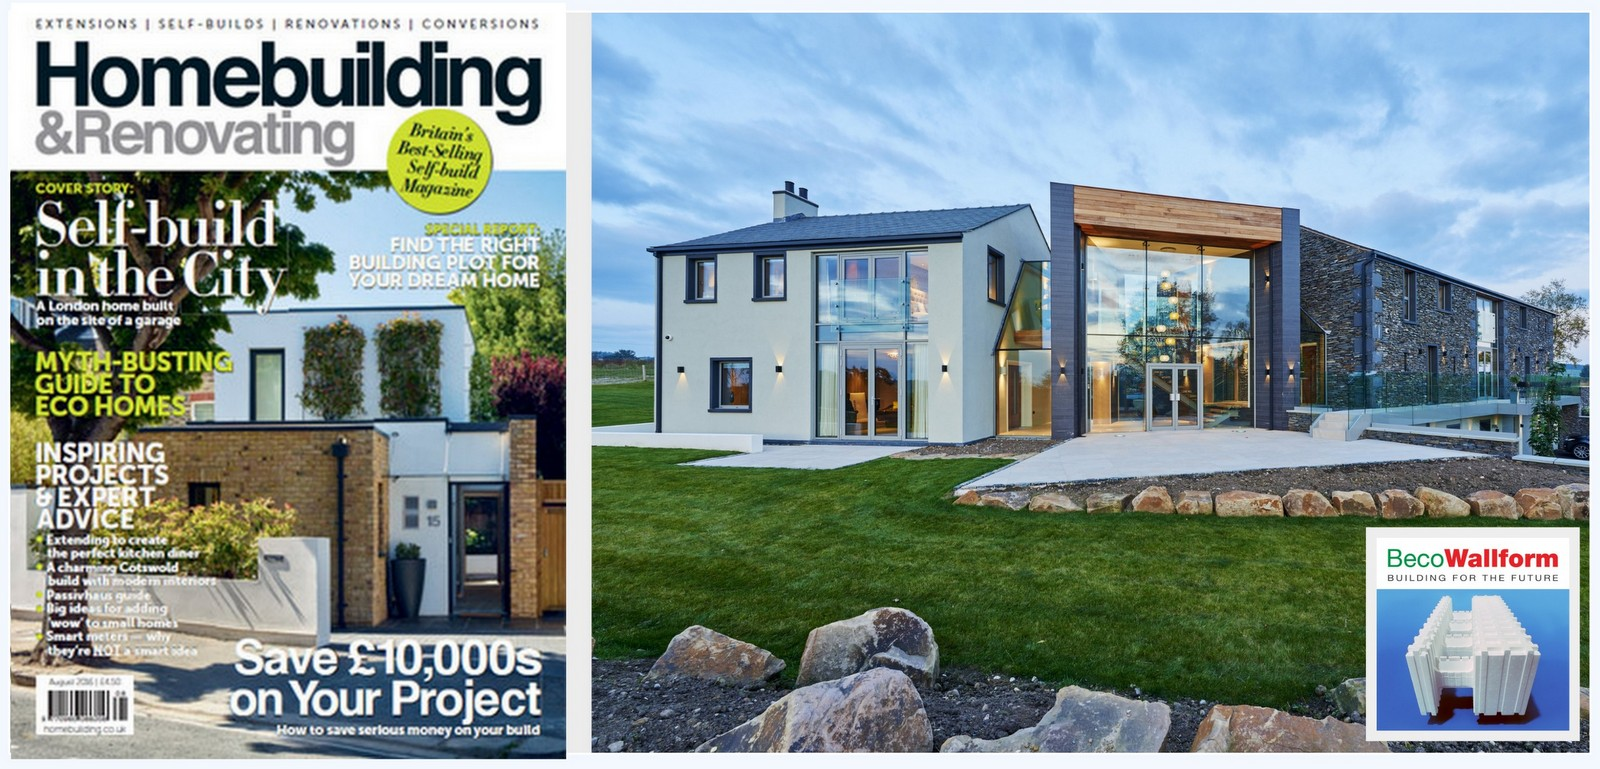 Homebuilding & Renovating Magazine Feature